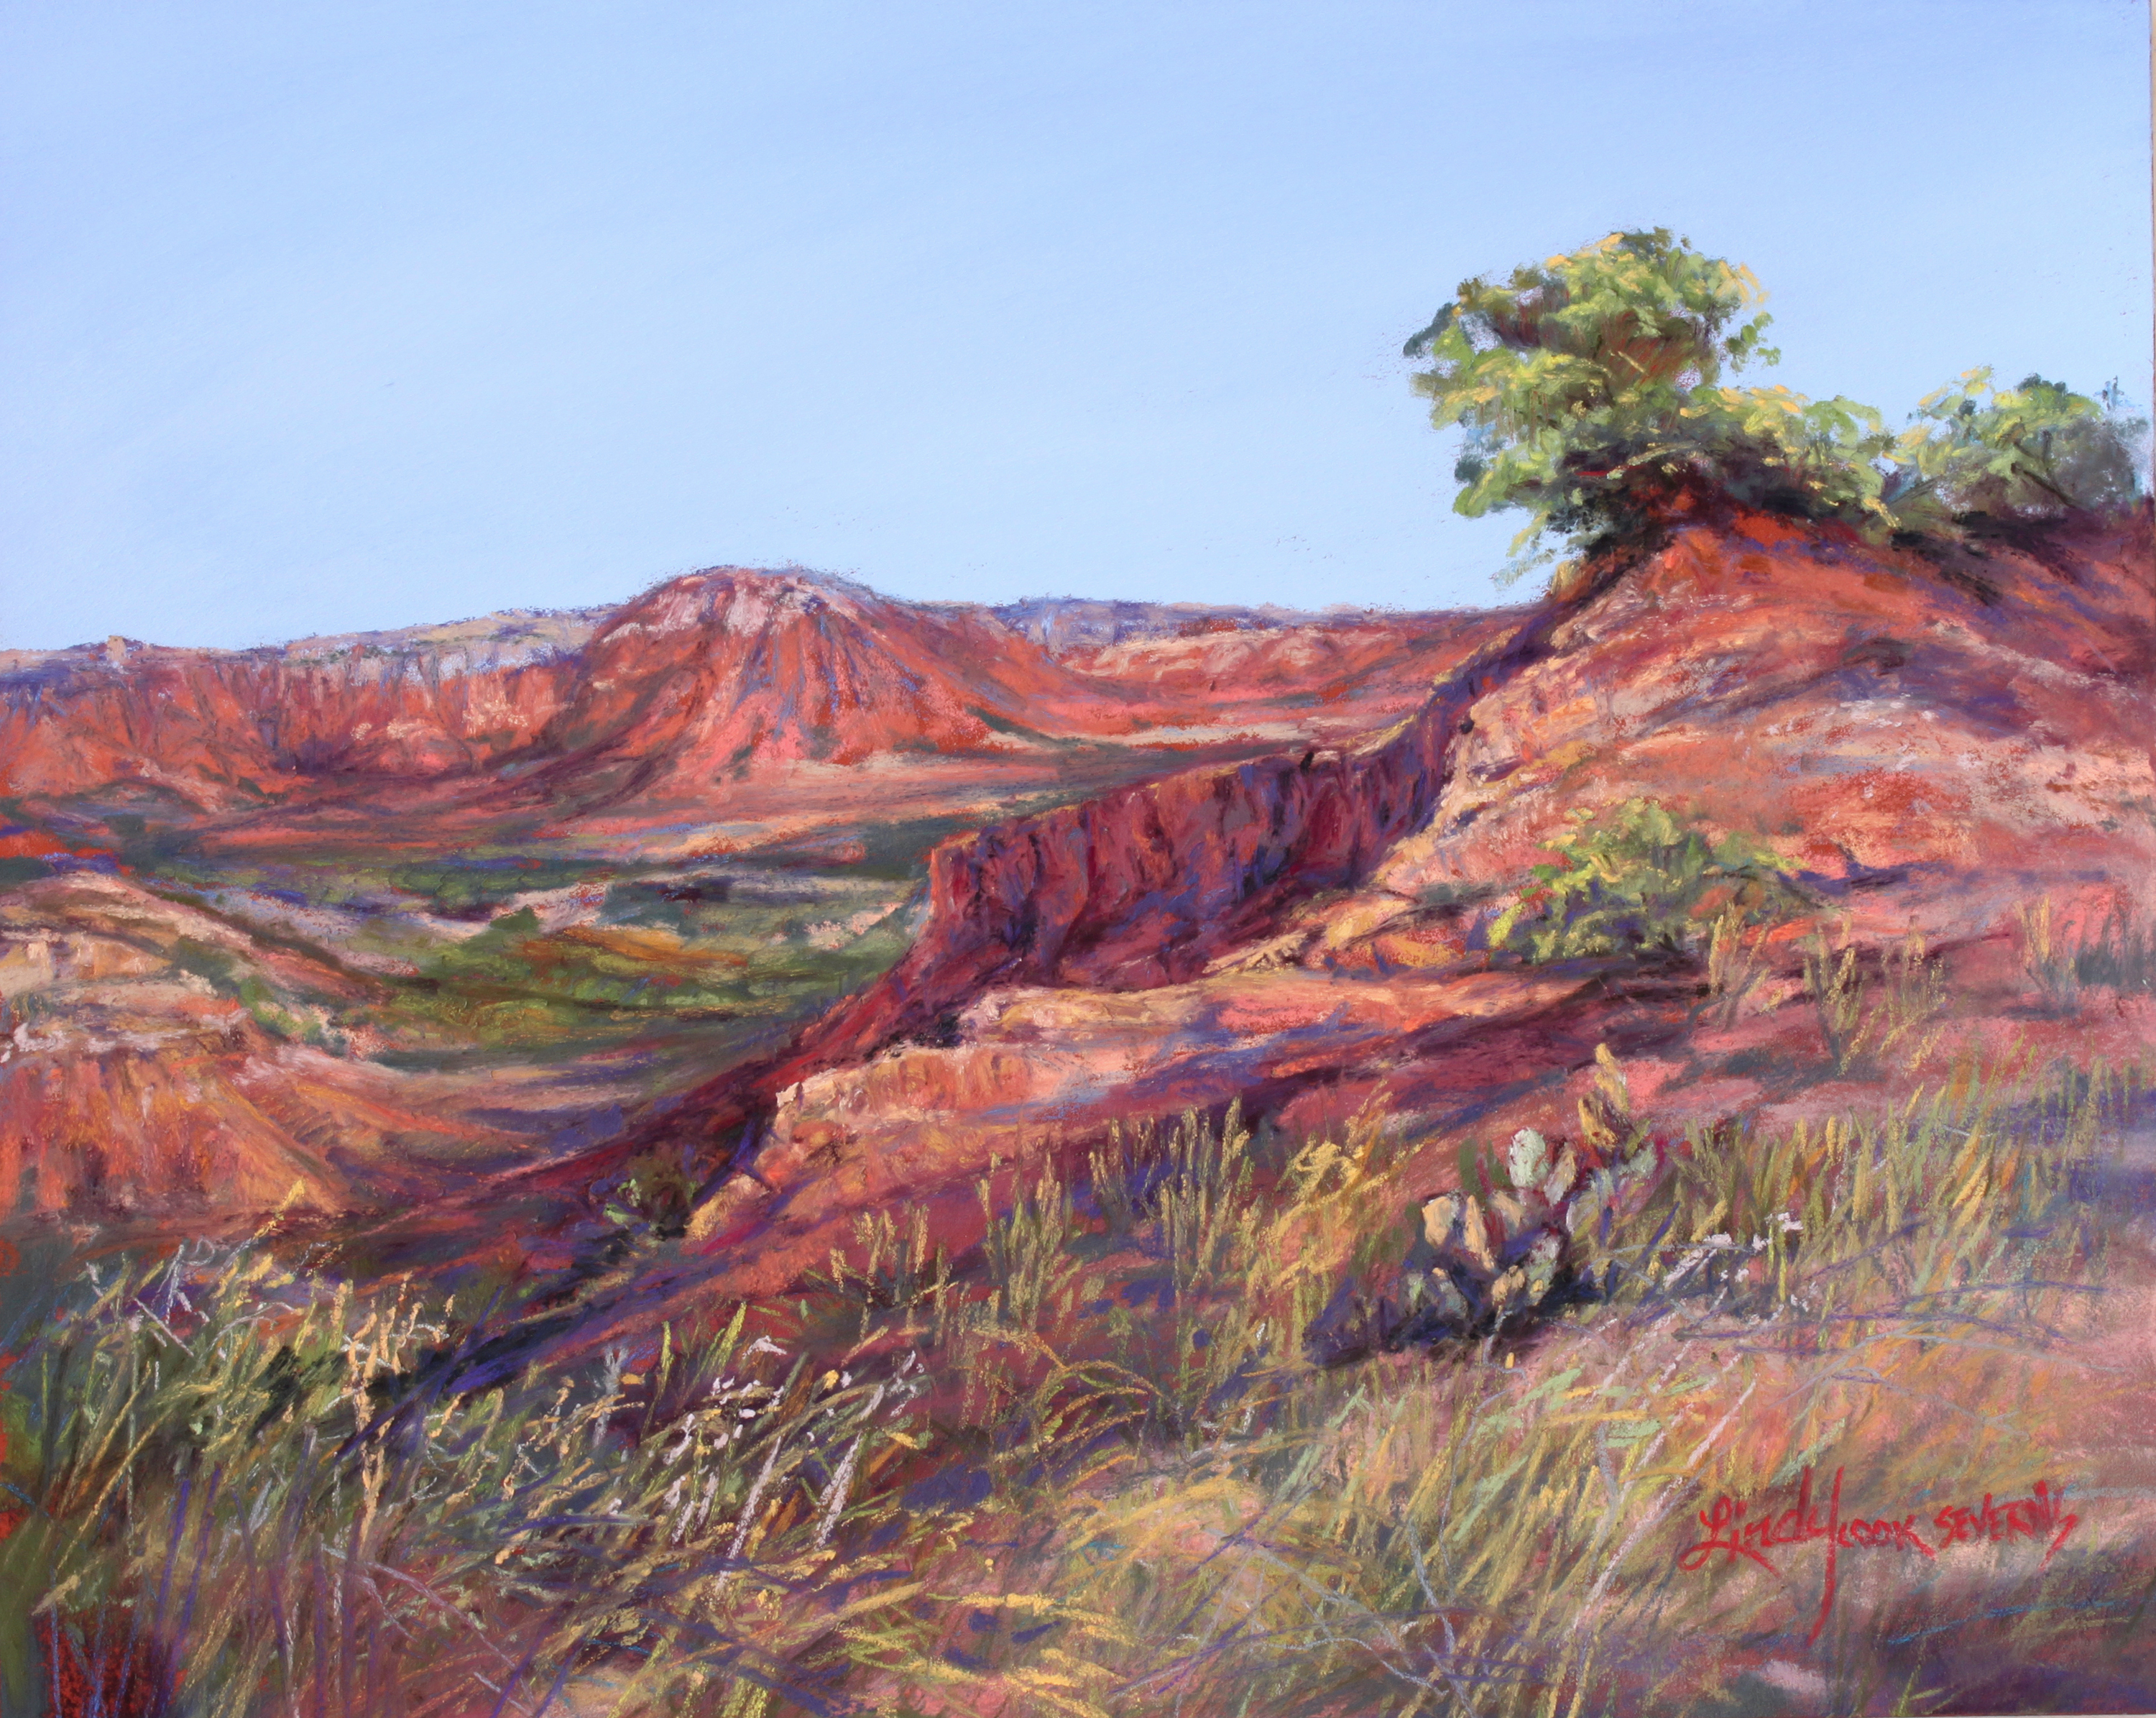 24j17 deep in canyons 8x10 pastel lindy c severns ulvqzz